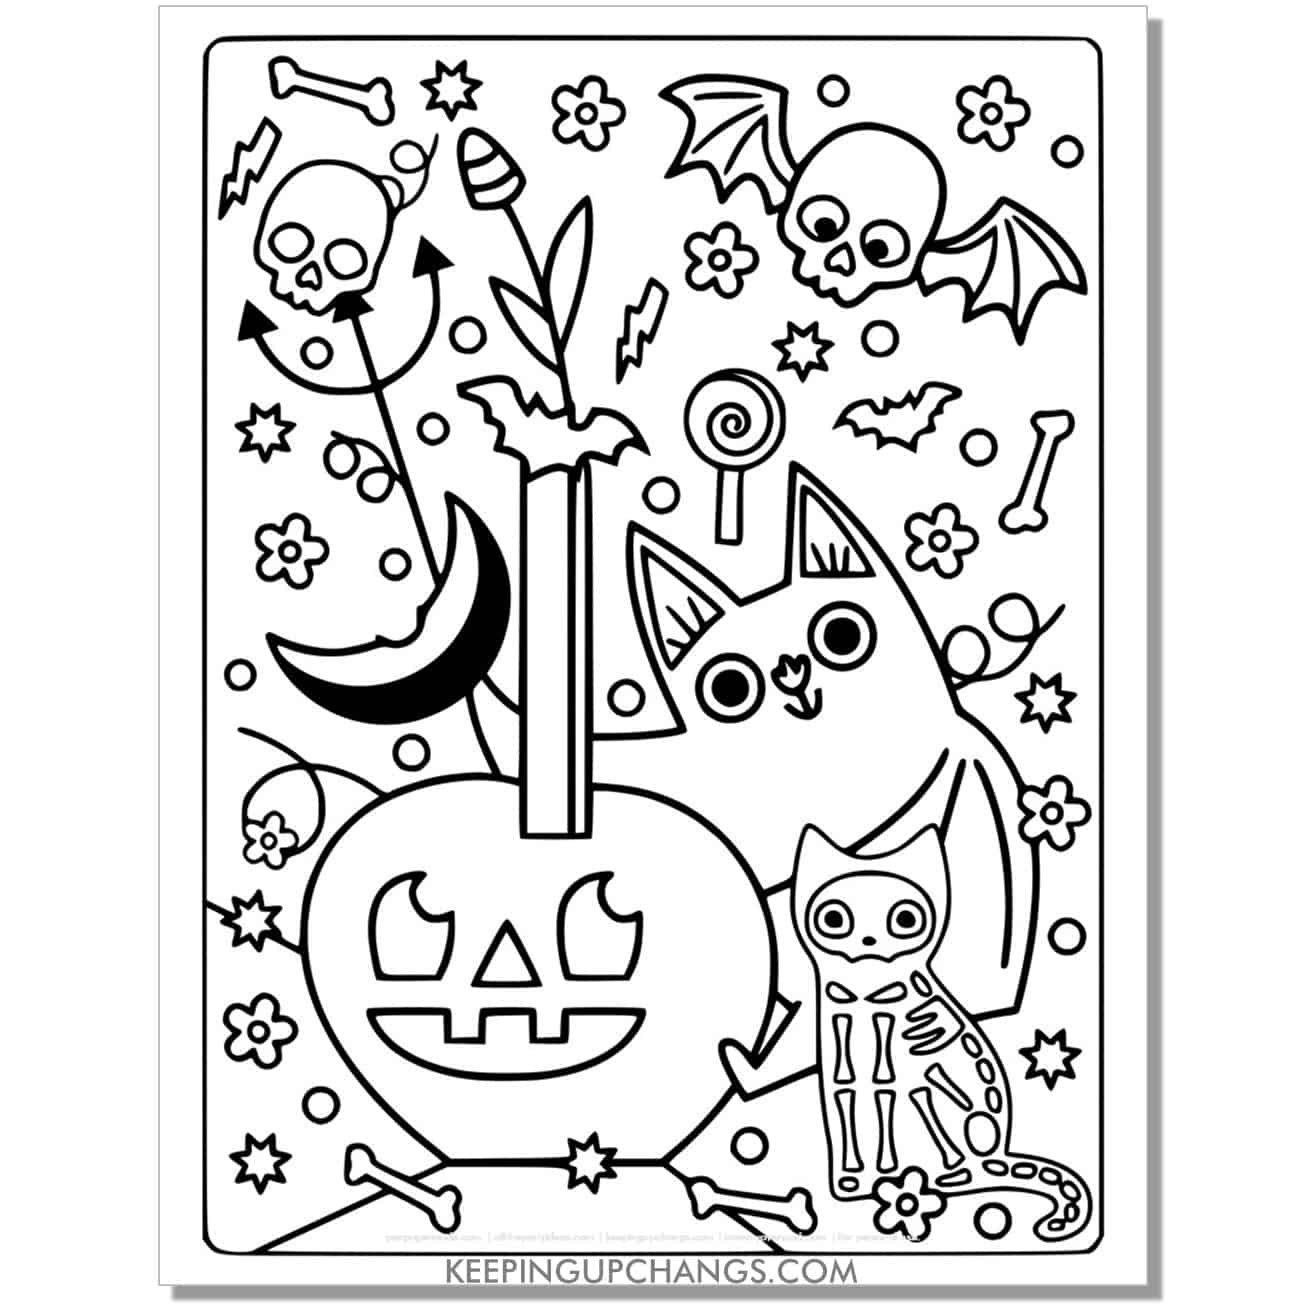 full size halloween cat skeleton and ghost costume coloring page.